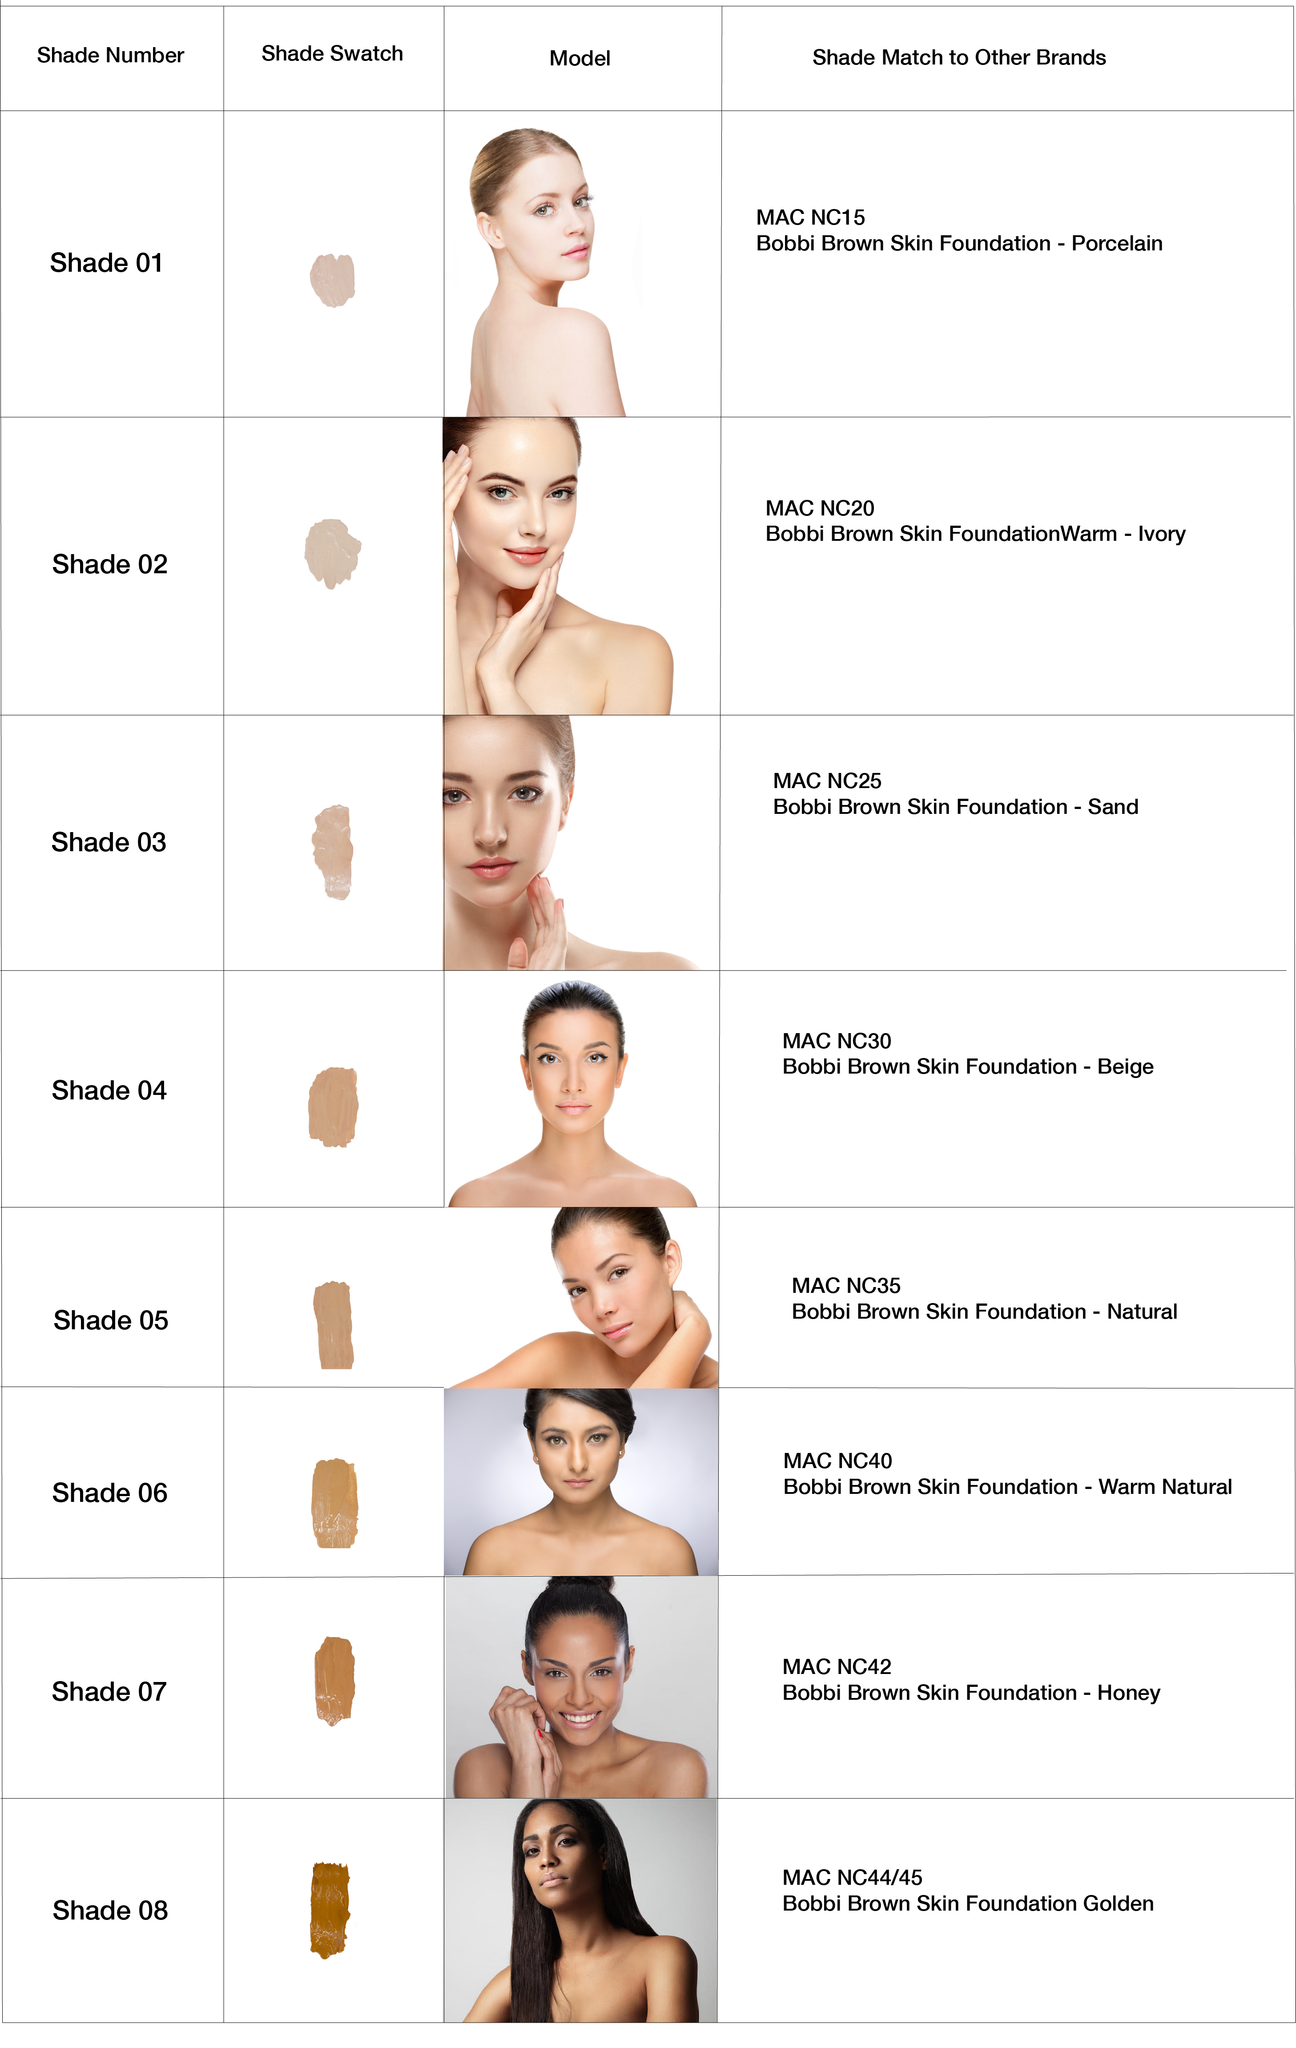 Revlon colorstay color chart gallery free any chart examples revlon foundation colorstay color chart image collections free revlon foundation colorstay color chart images free any nvjuhfo Choice Image